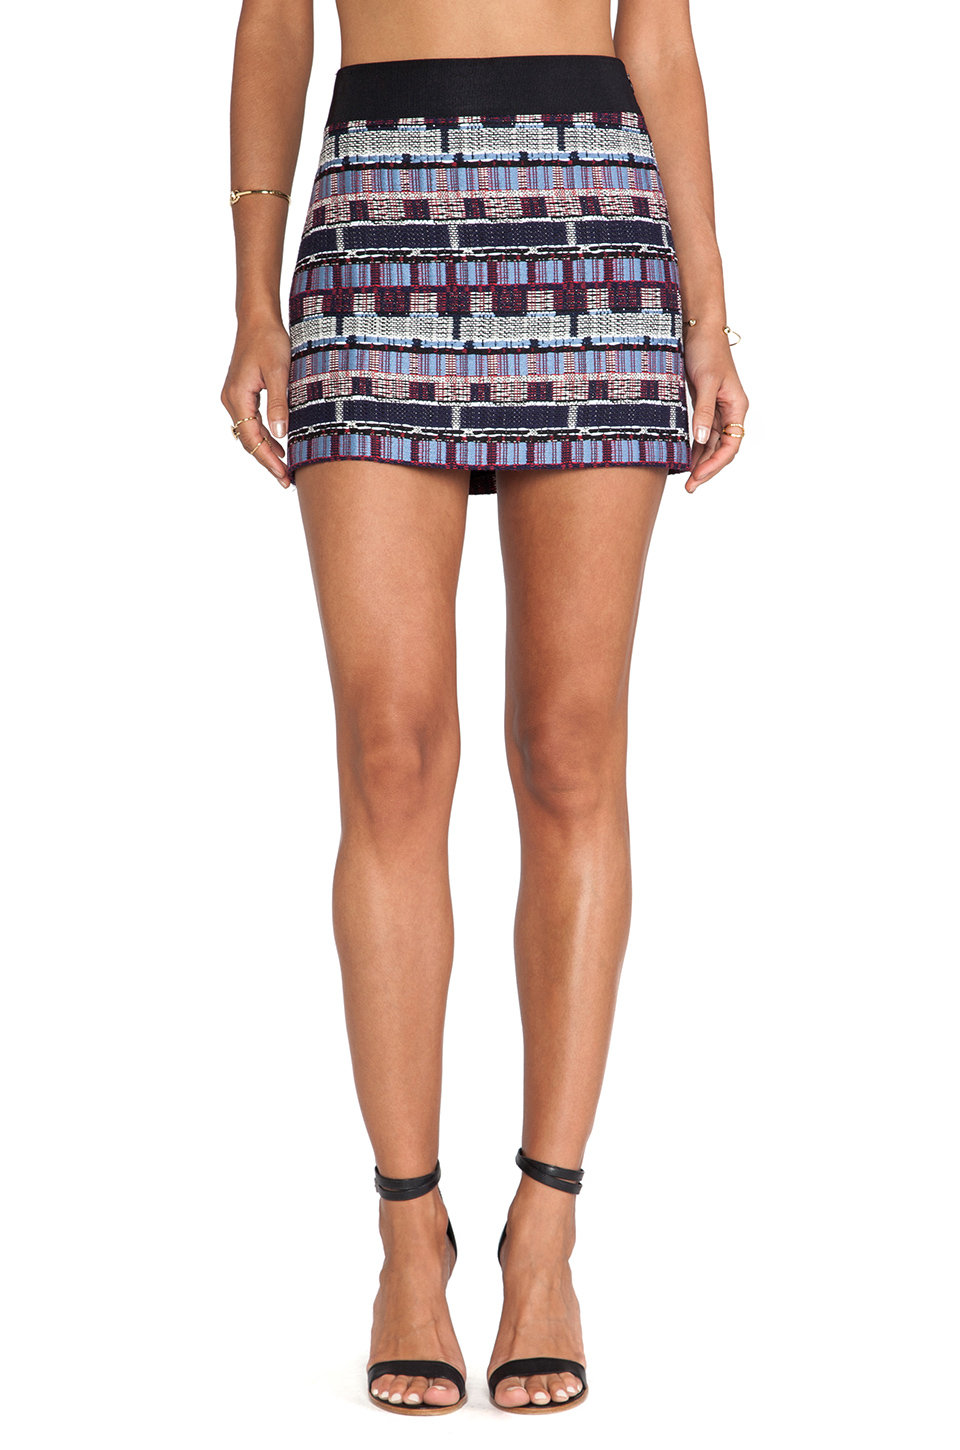 milly mini skirt Daily Find: The Perfect Graphic Mini Skirt from Milly